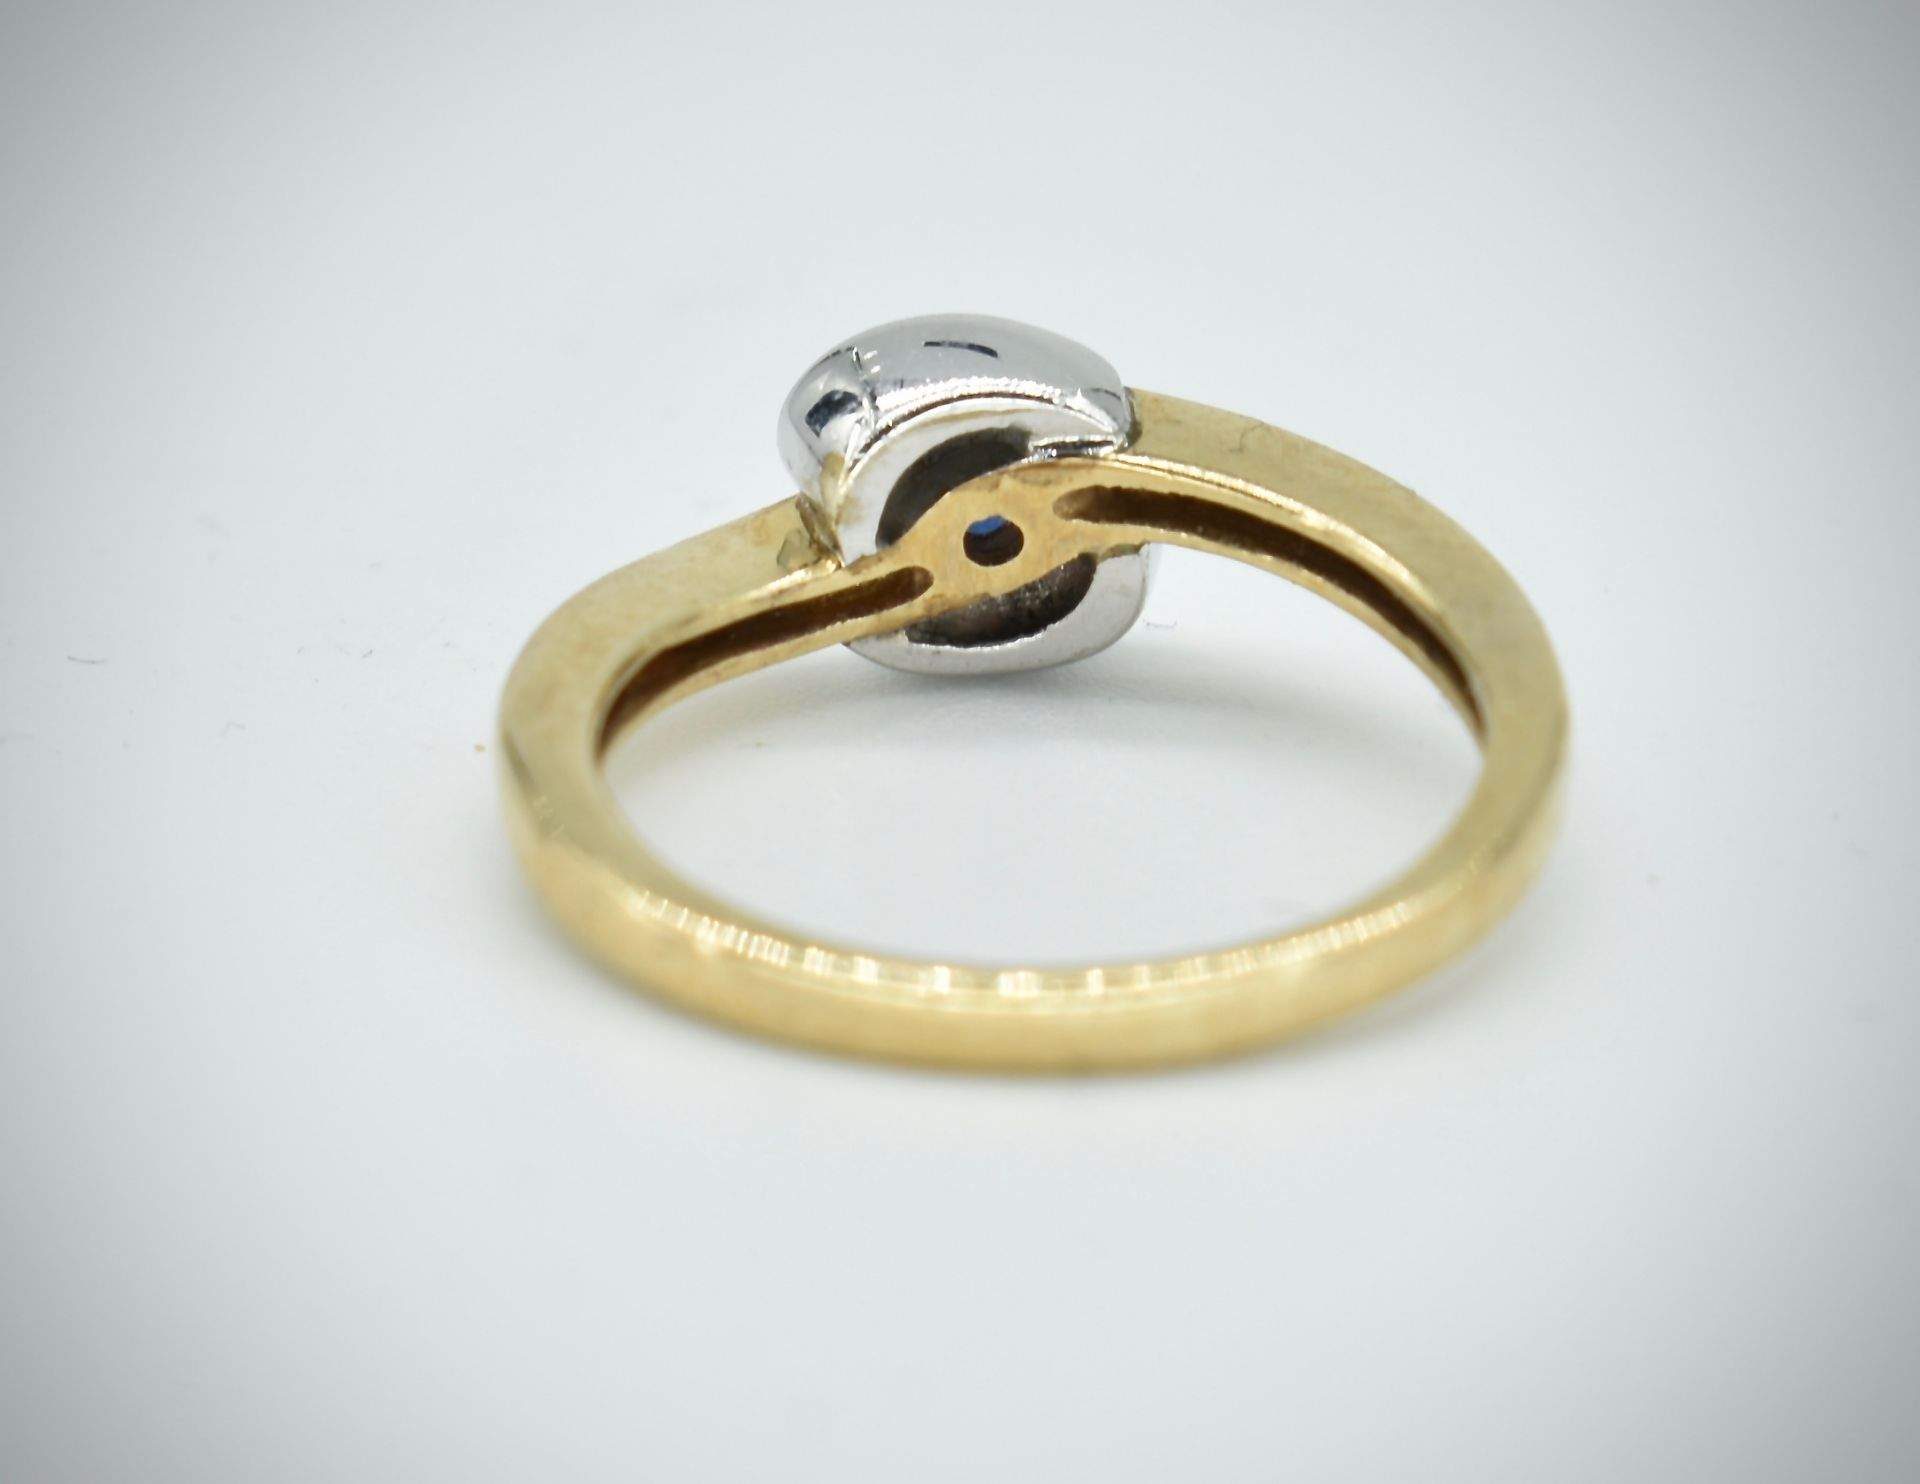 9ct Gold & Sapphire Ring - Image 4 of 5